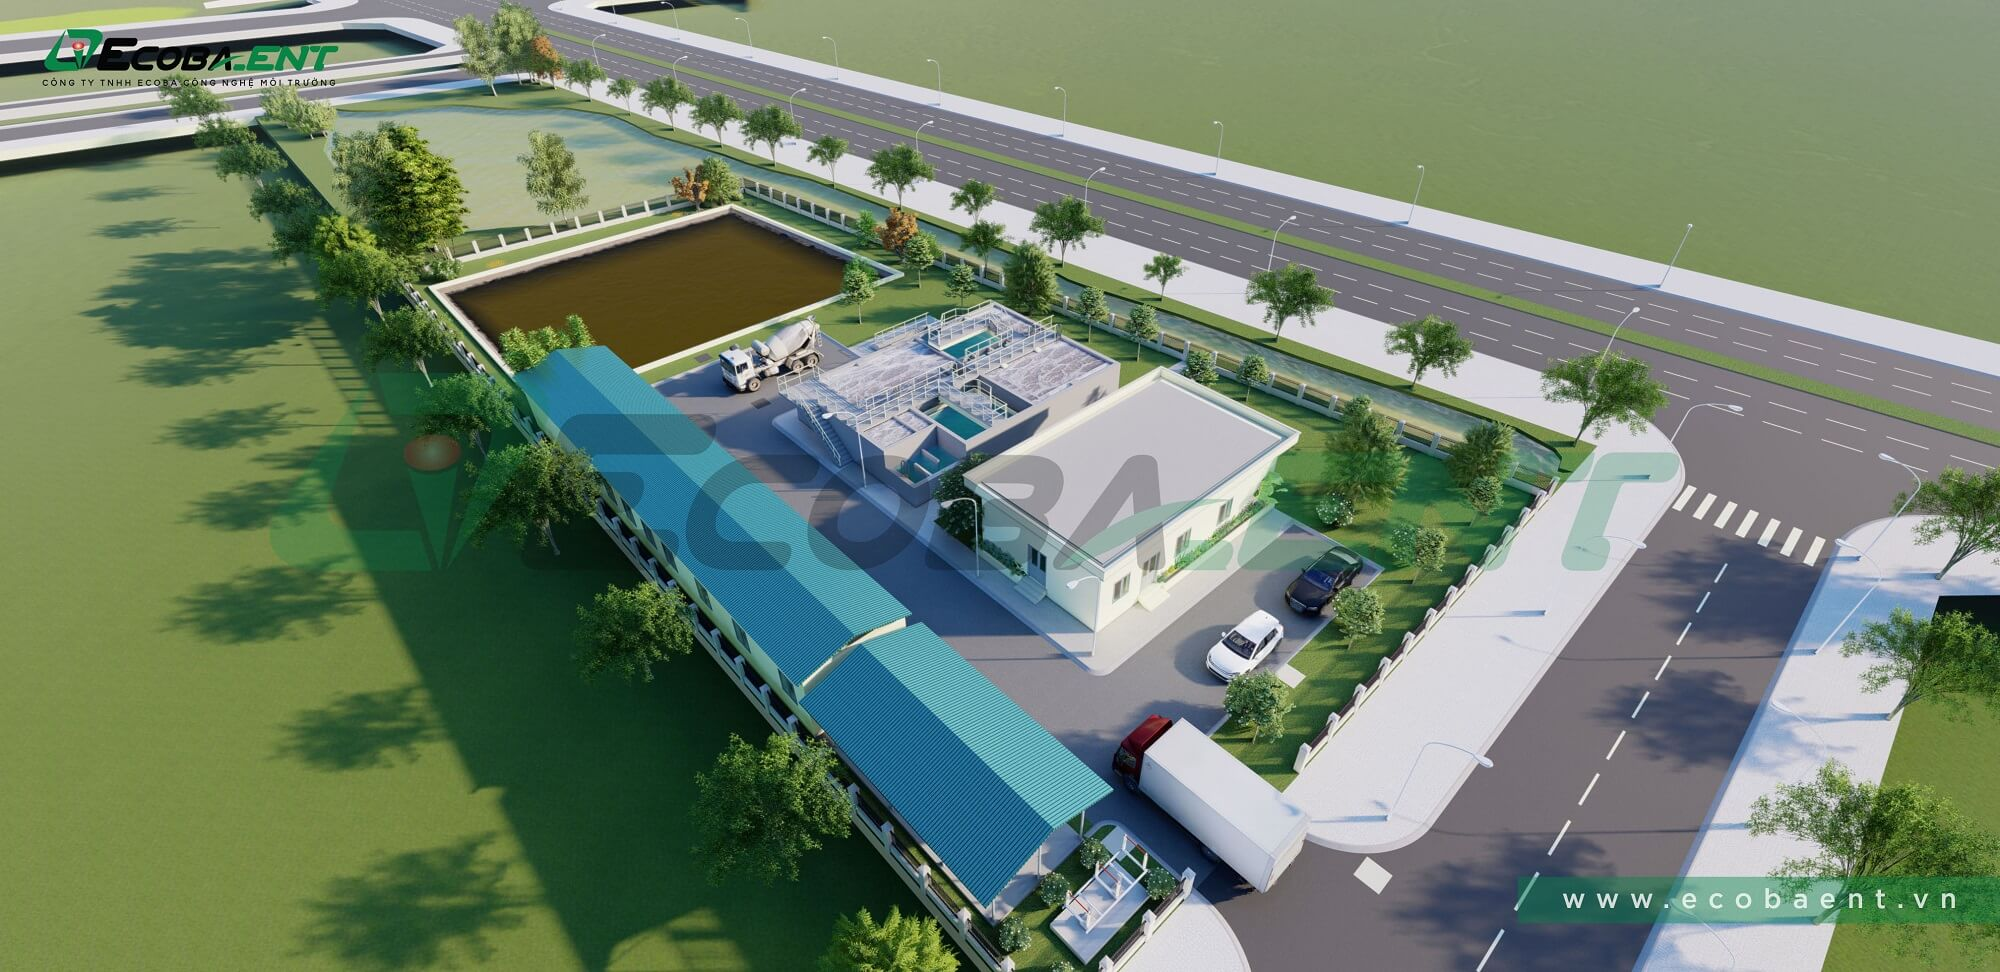 The centralized wastewater treatment plant for Nham Son Industrial cluster